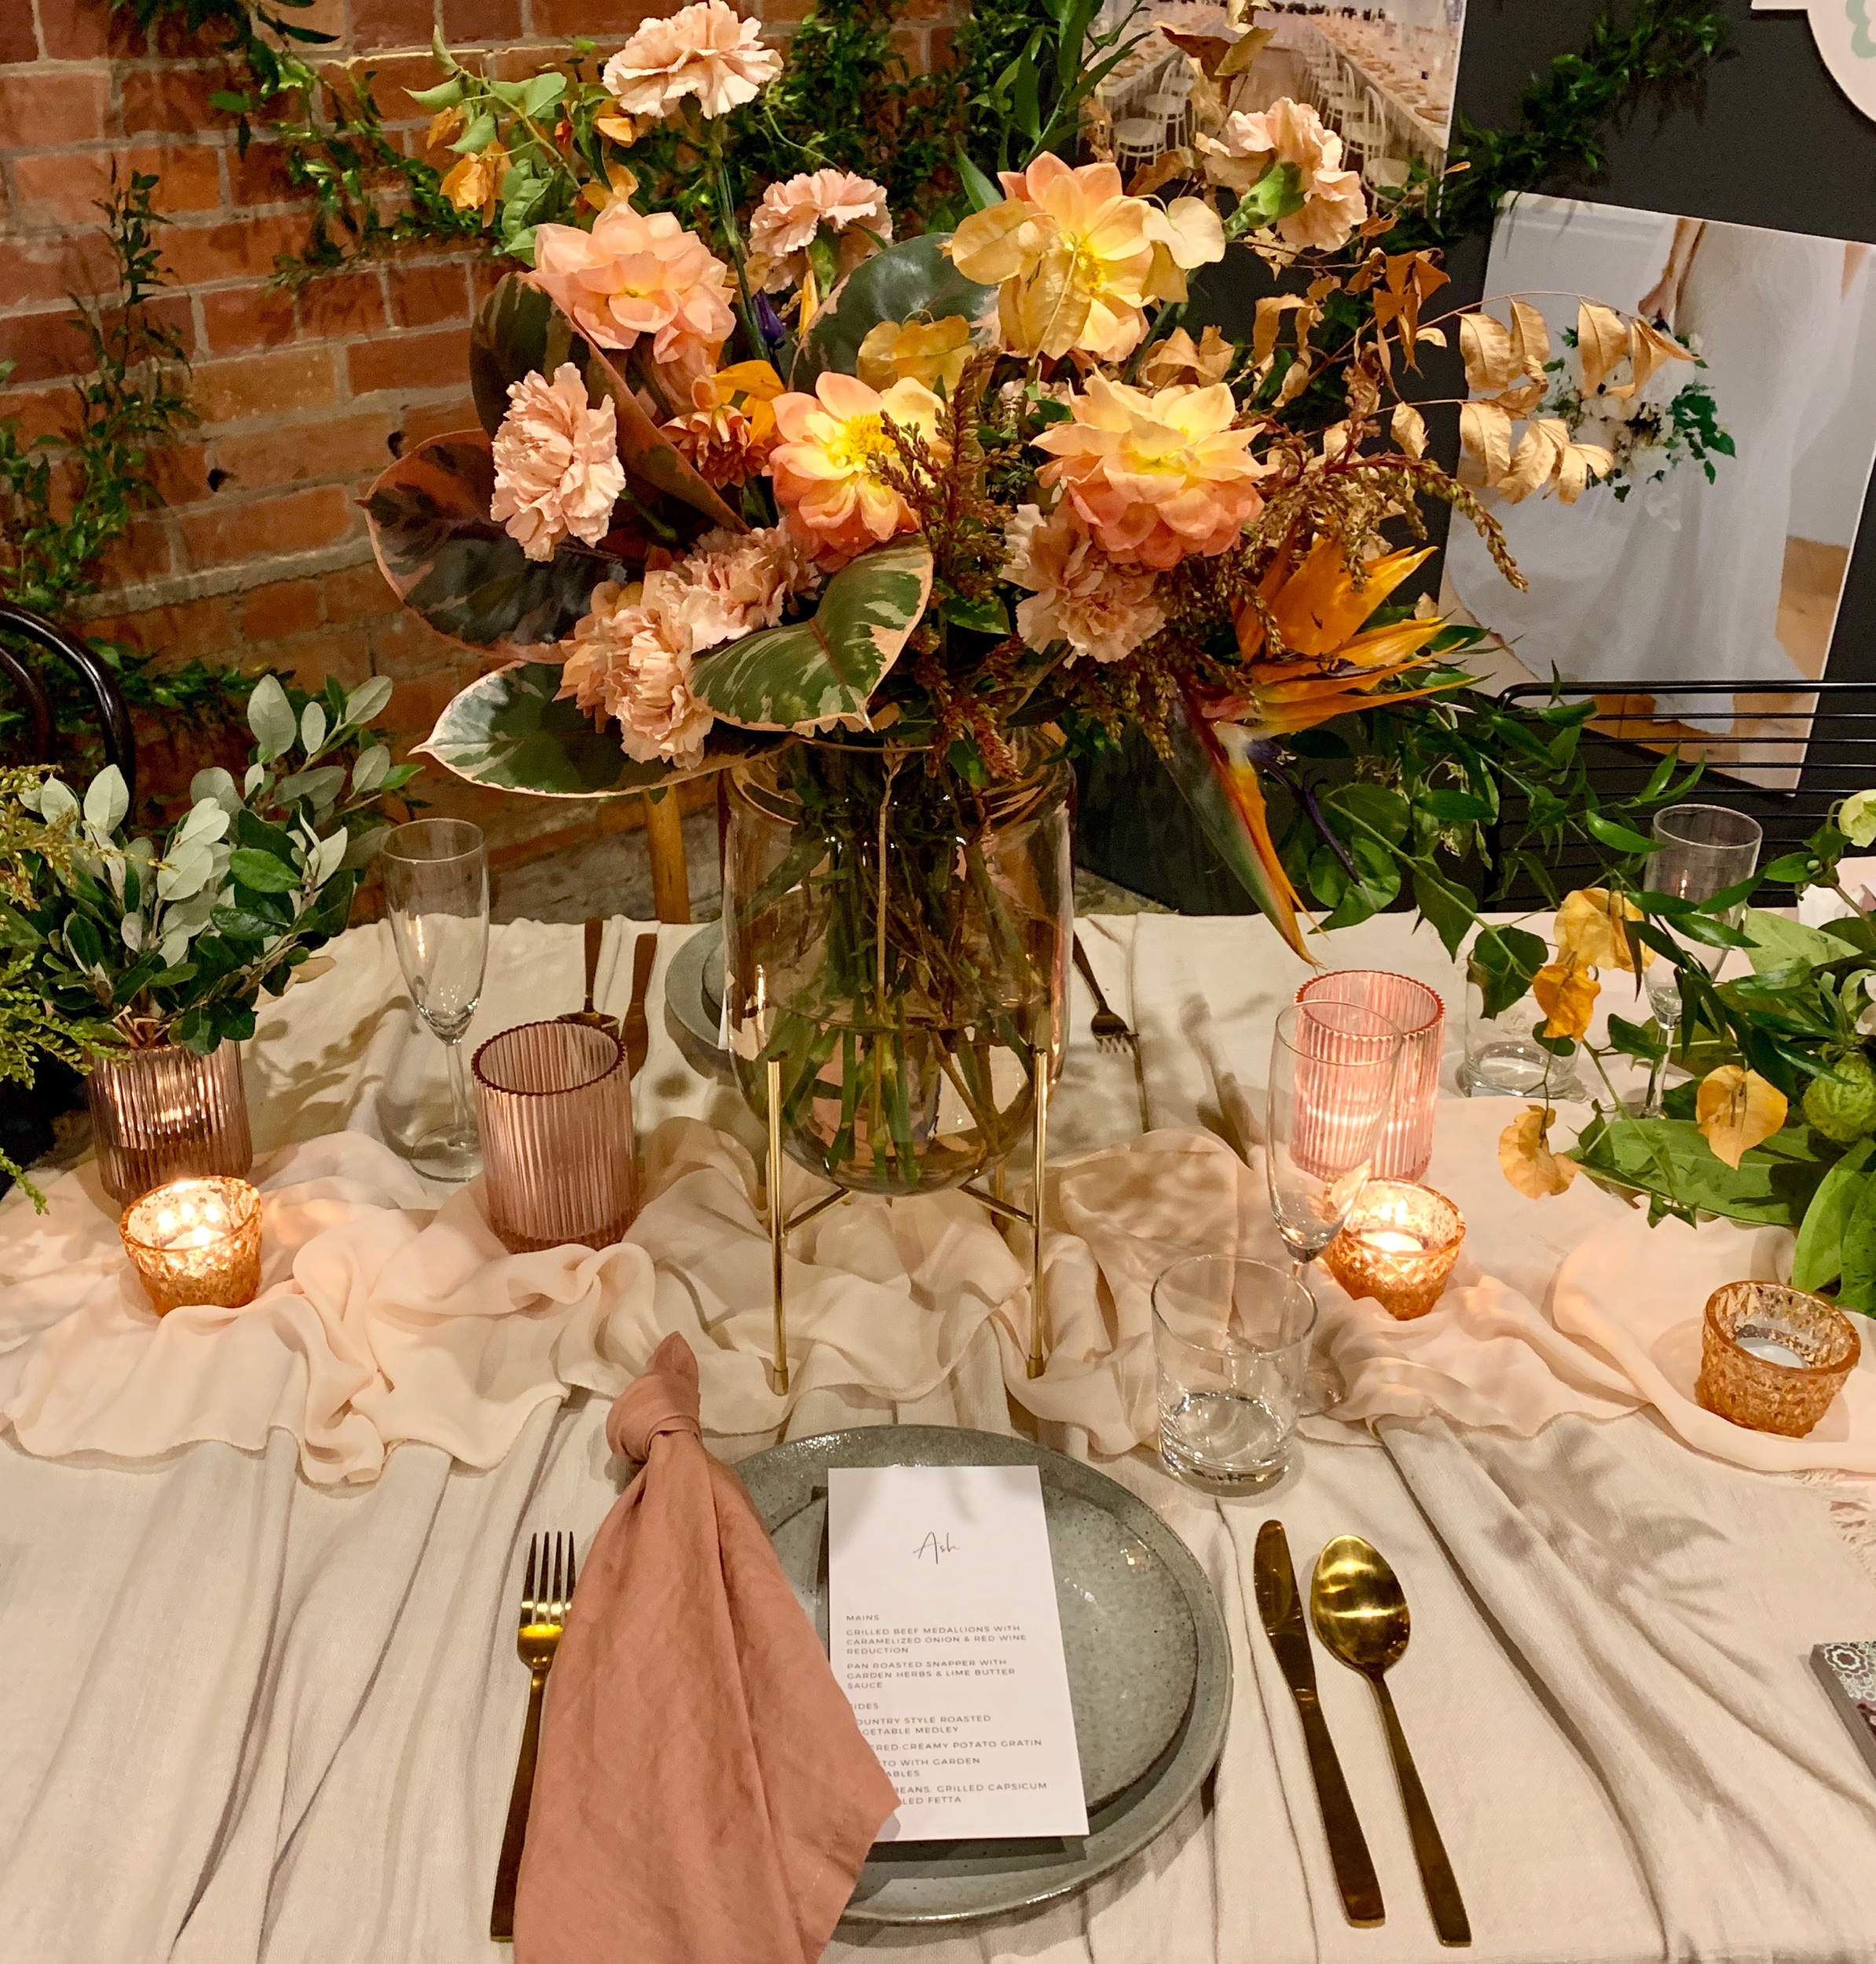 Wedding Harvest Reception Table Setting Blush Florals Candles Main Event Weddings